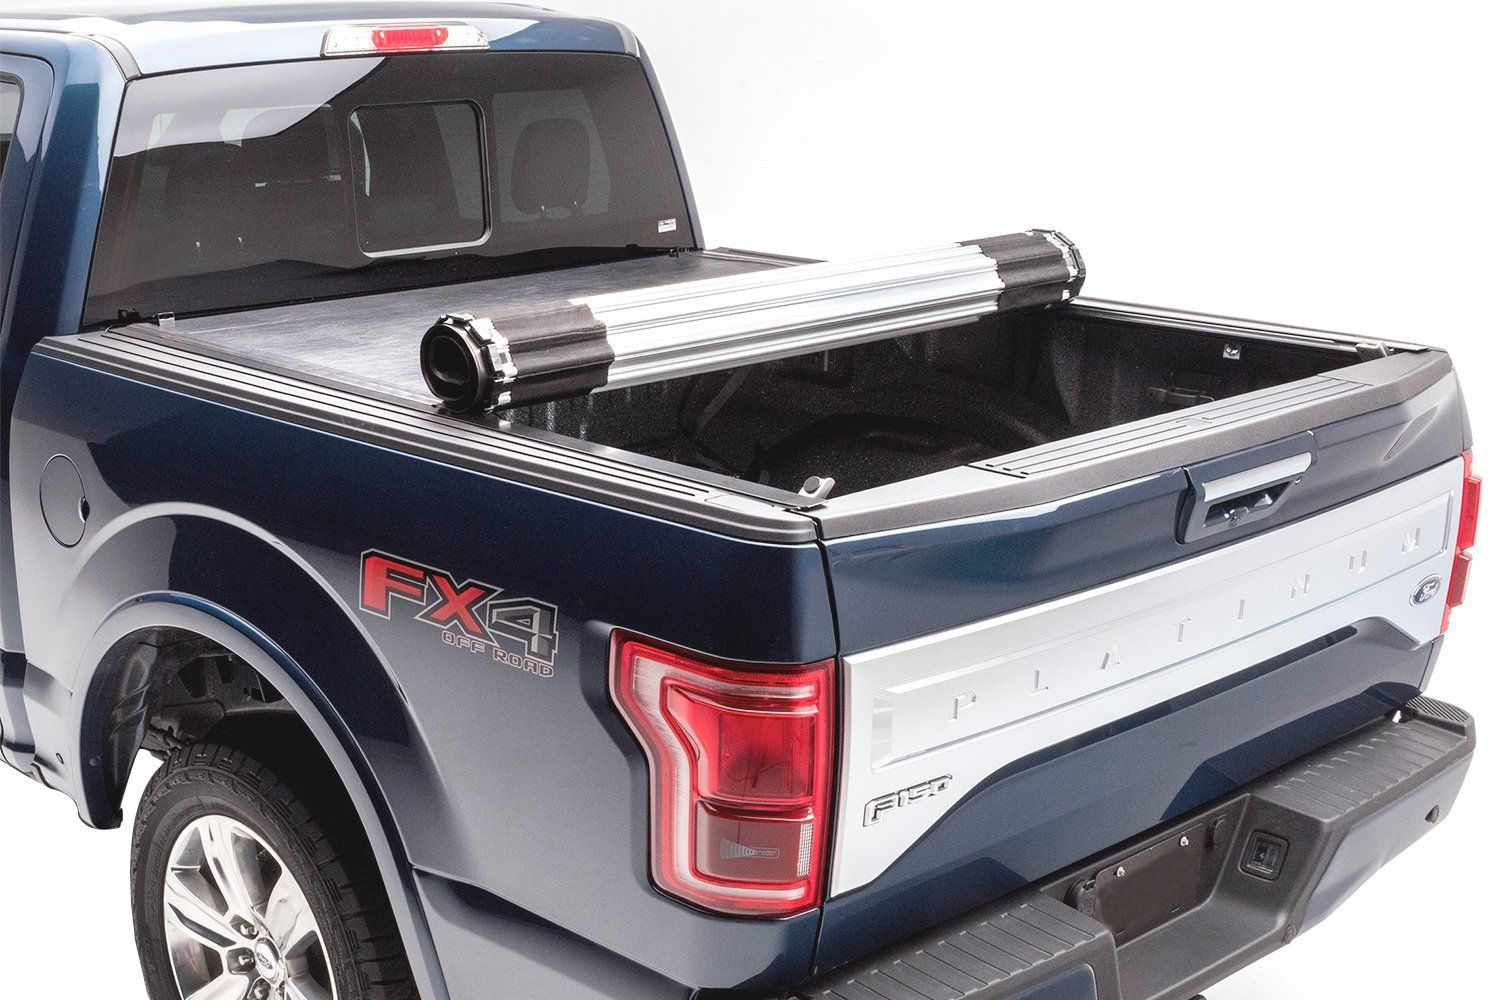 Pin on Truck bed covers